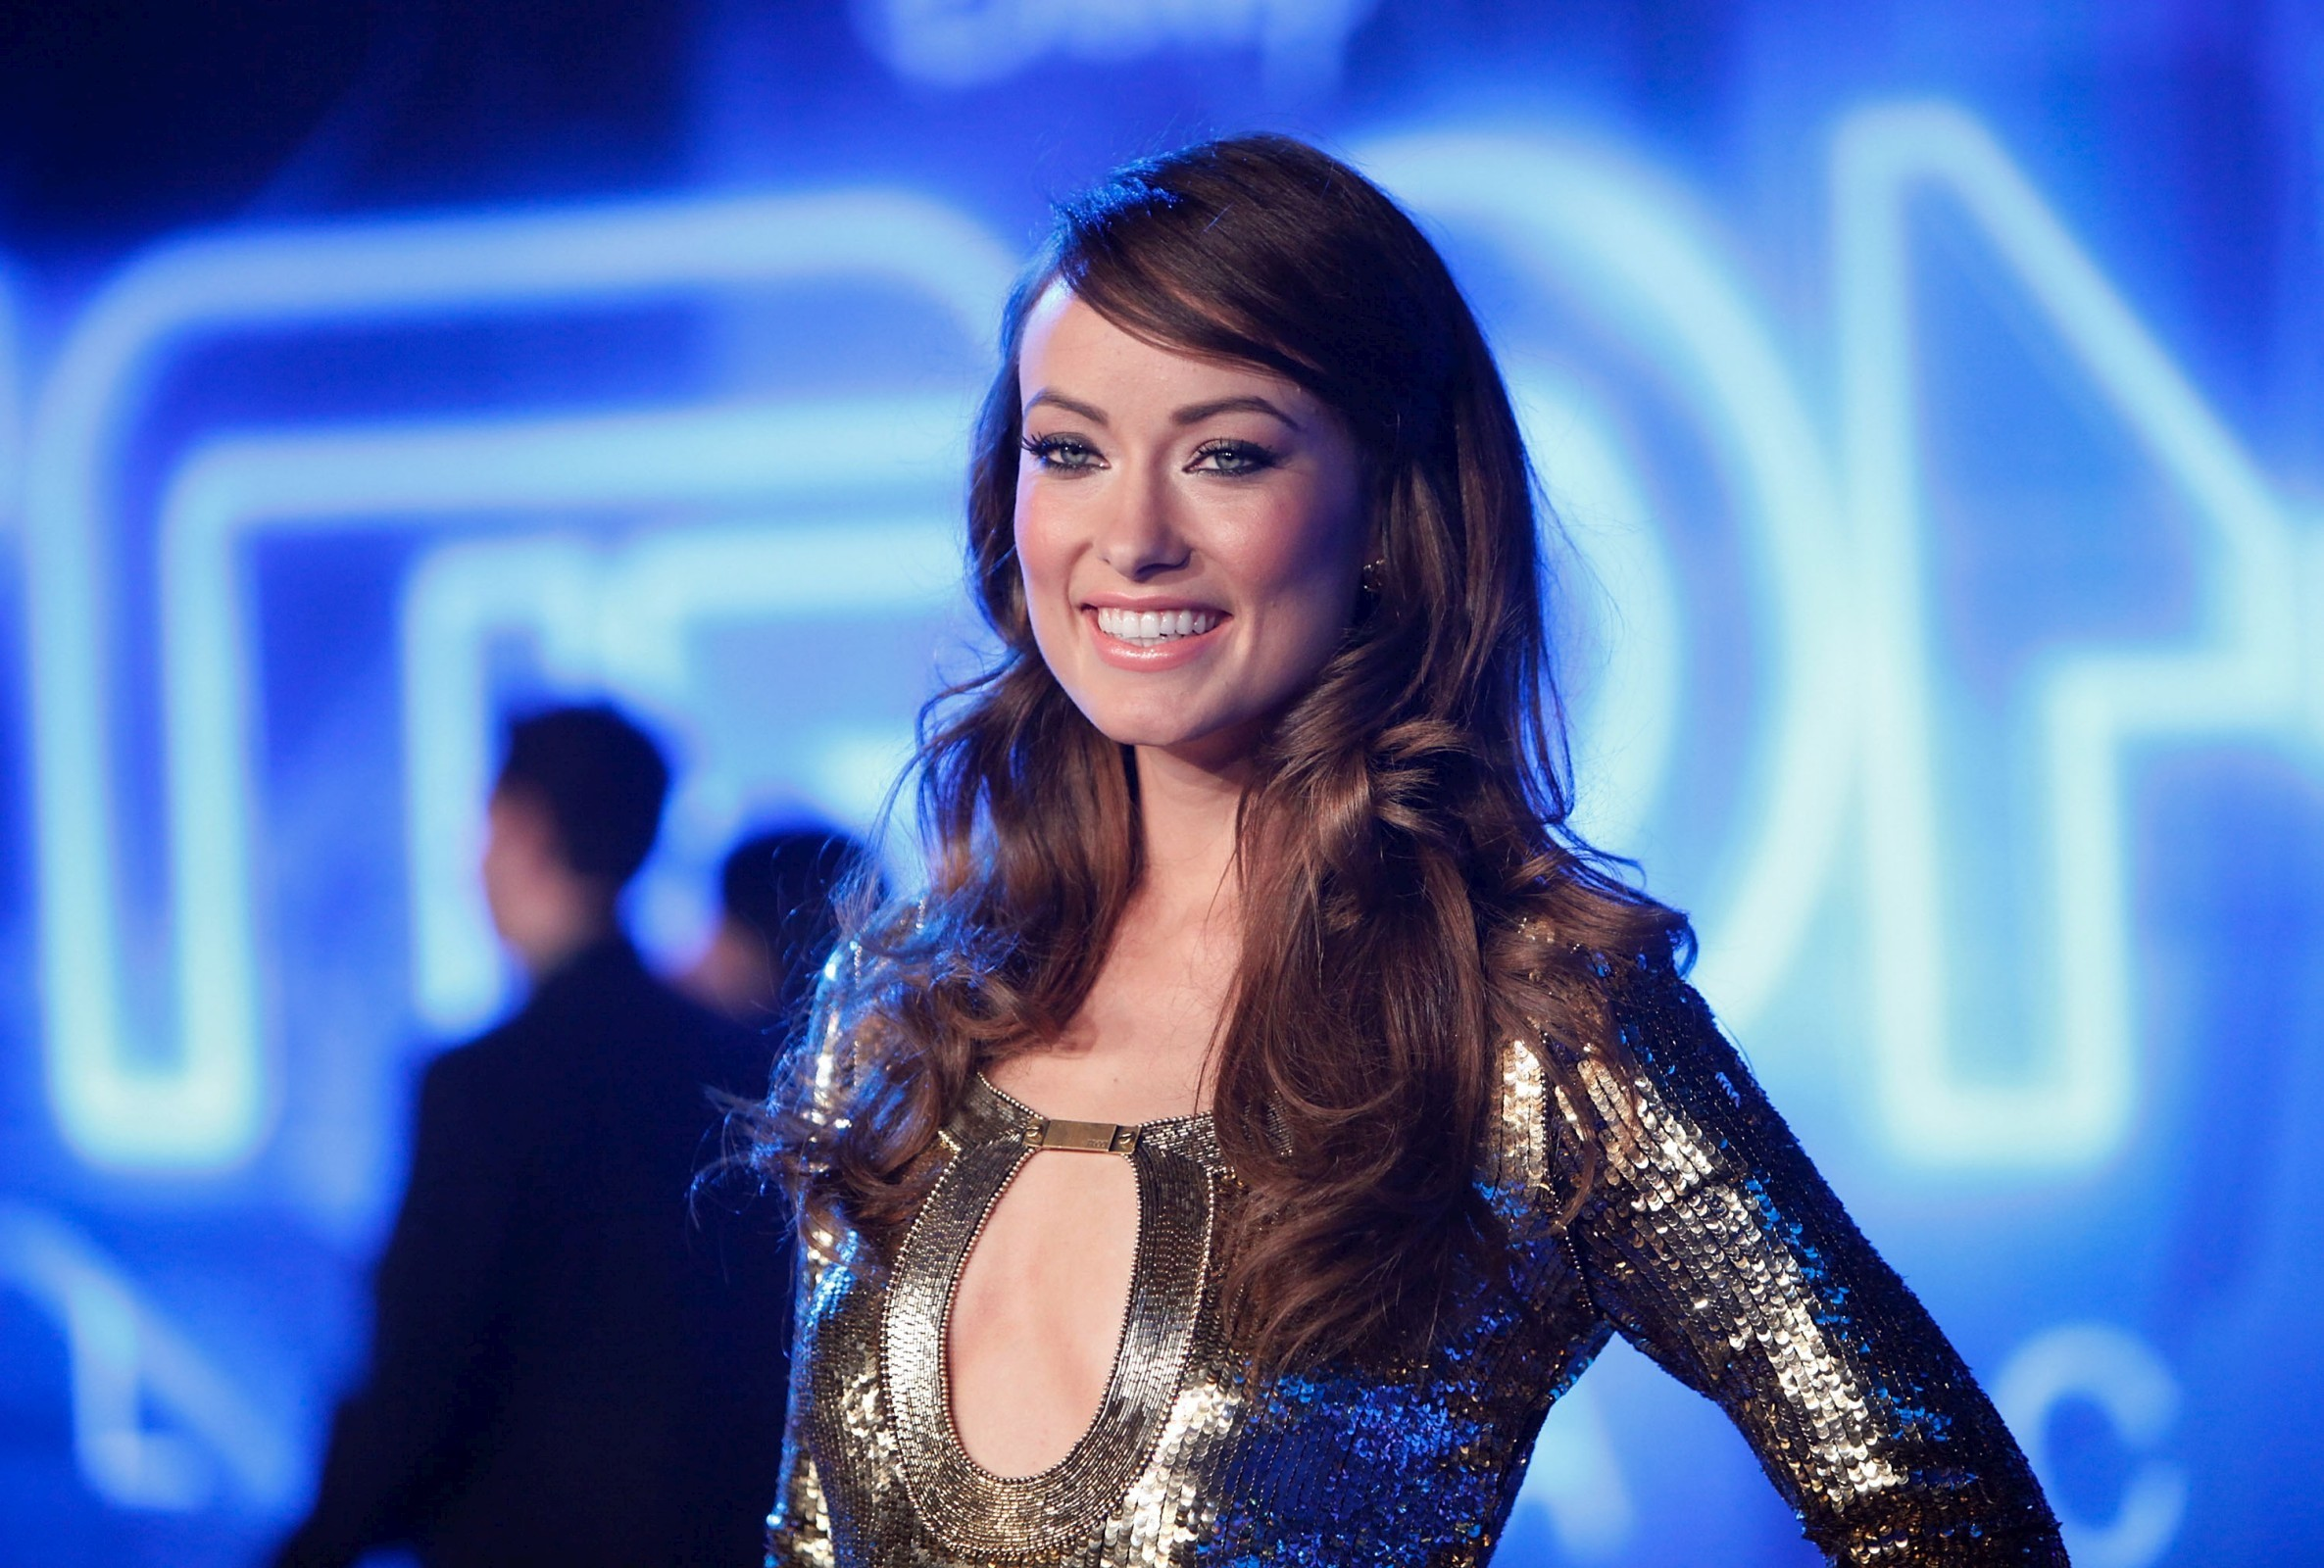 Olivia Wilde @ the LA Premiere of 'Tron: Legacy' (HQ)